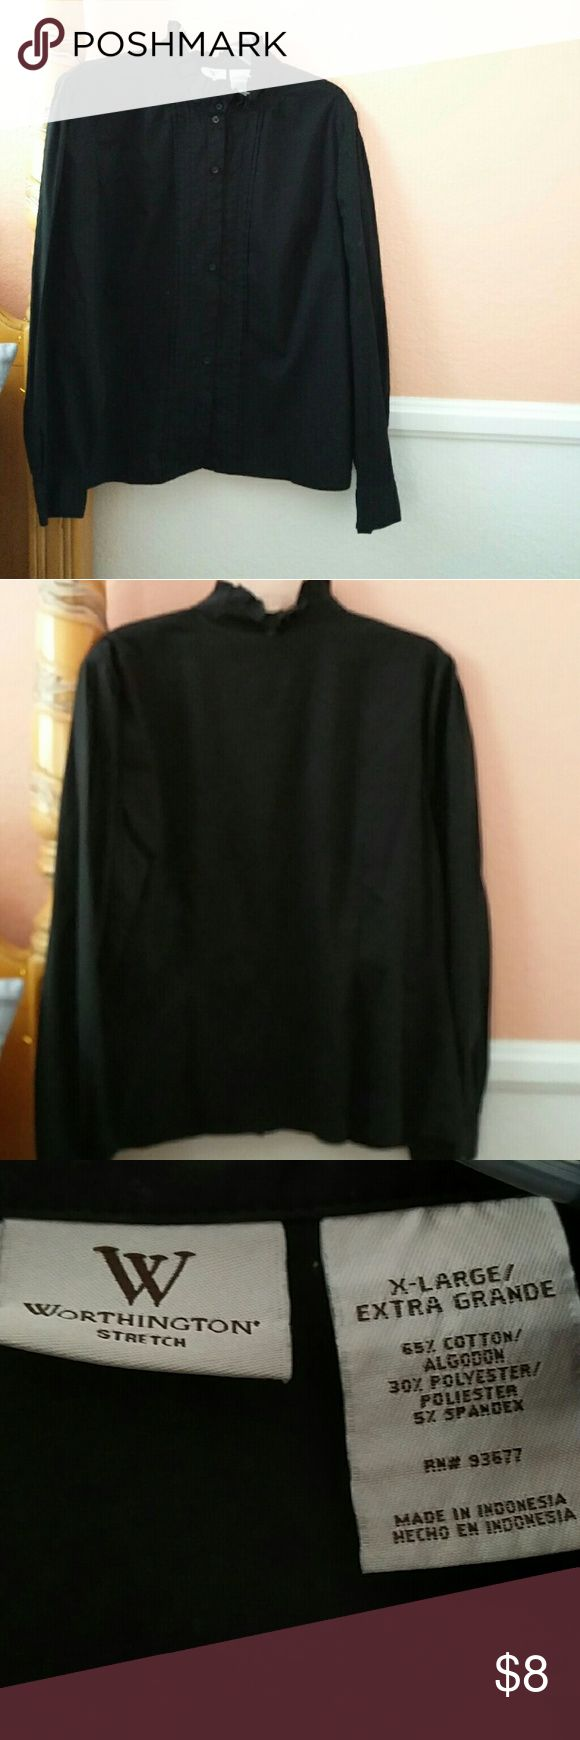 Worthington Black Collared Button Dress Shirt Worn Once  Has non traditional, pleated collar  Great condition: no tears, no stains, no holes, no missing buttons  Measurements: 22 inch chest, 26 inch length Worthington Tops Button Down Shirts